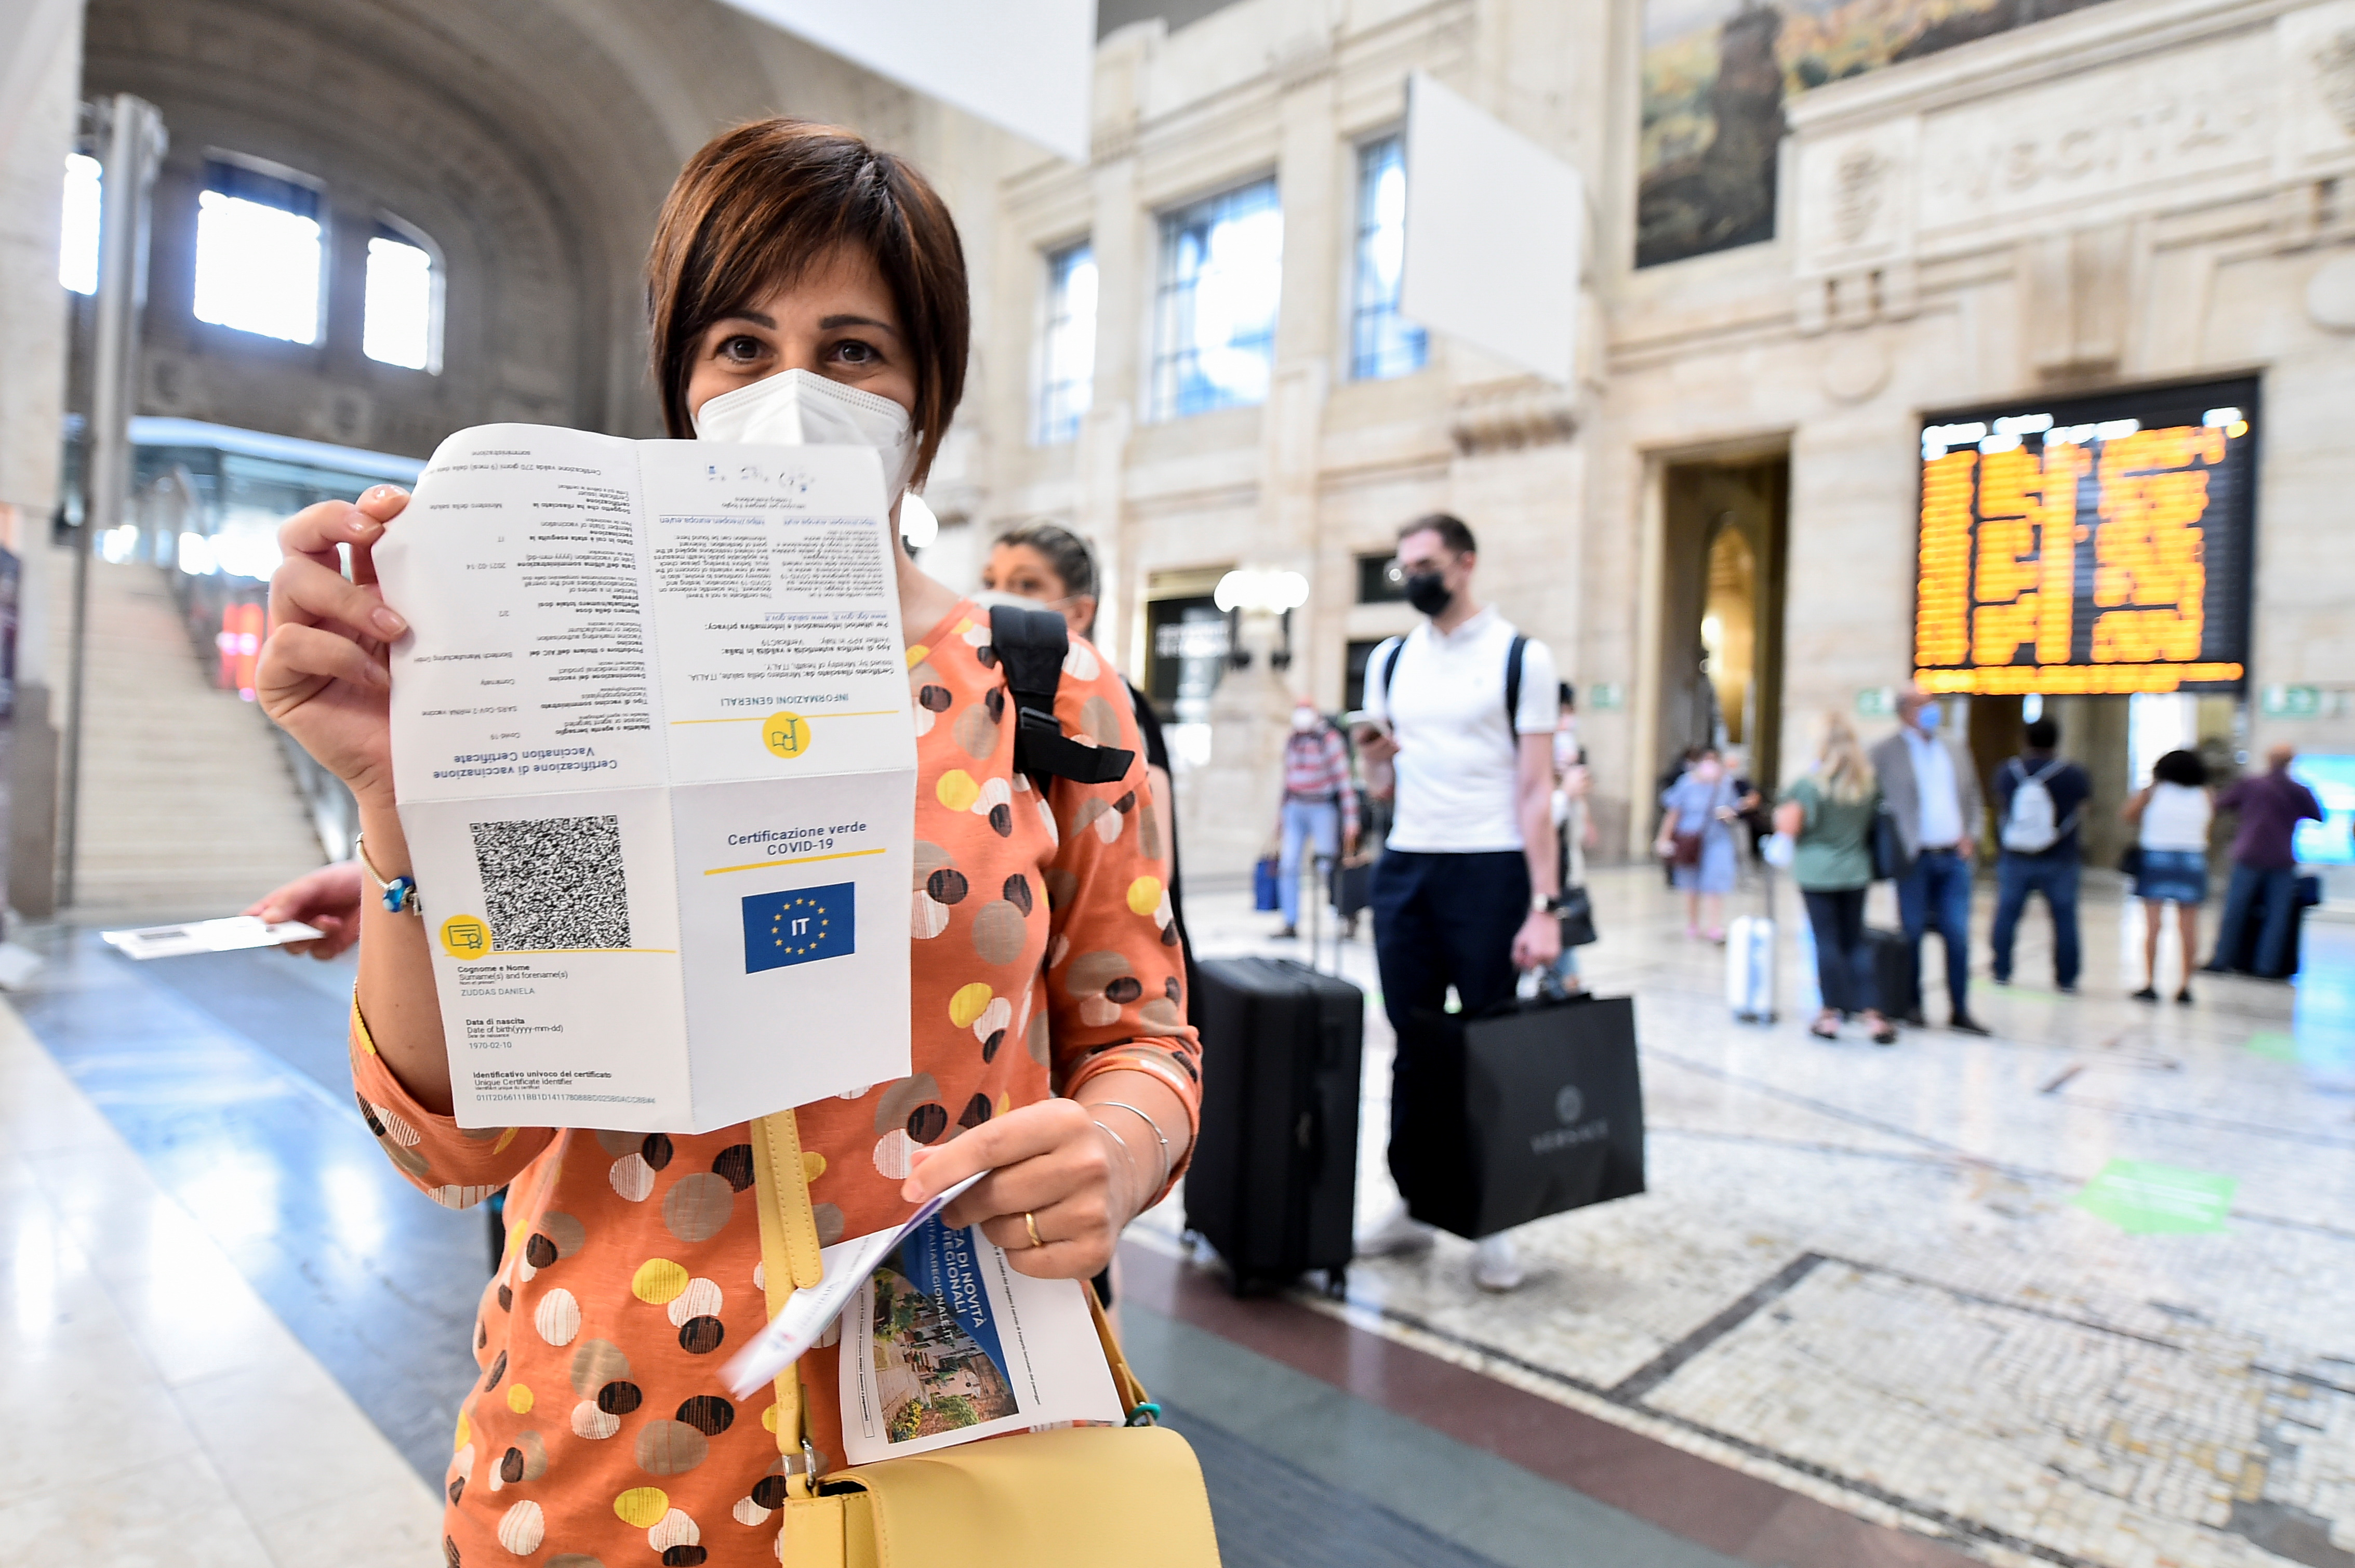 A woman shows her COVID-19 certificate at a train station in Milan, Italy, September 1, 2021. REUTERS/Flavio Lo Scalzo